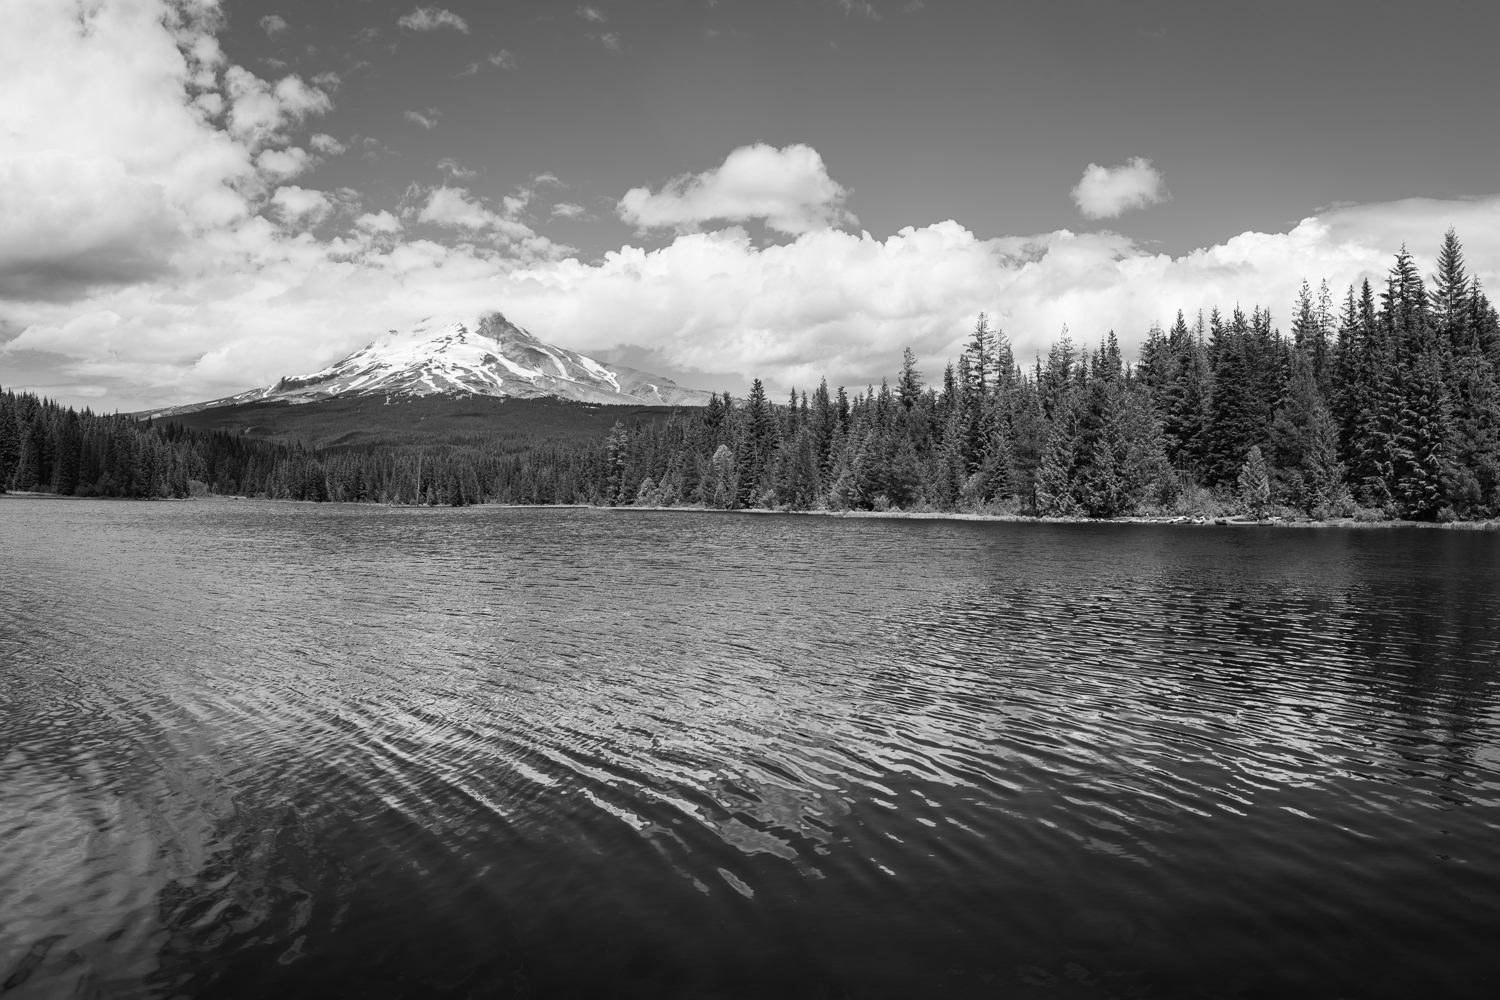 Alright, I have to show a photo of Mt. Hood, do I? Here it is …